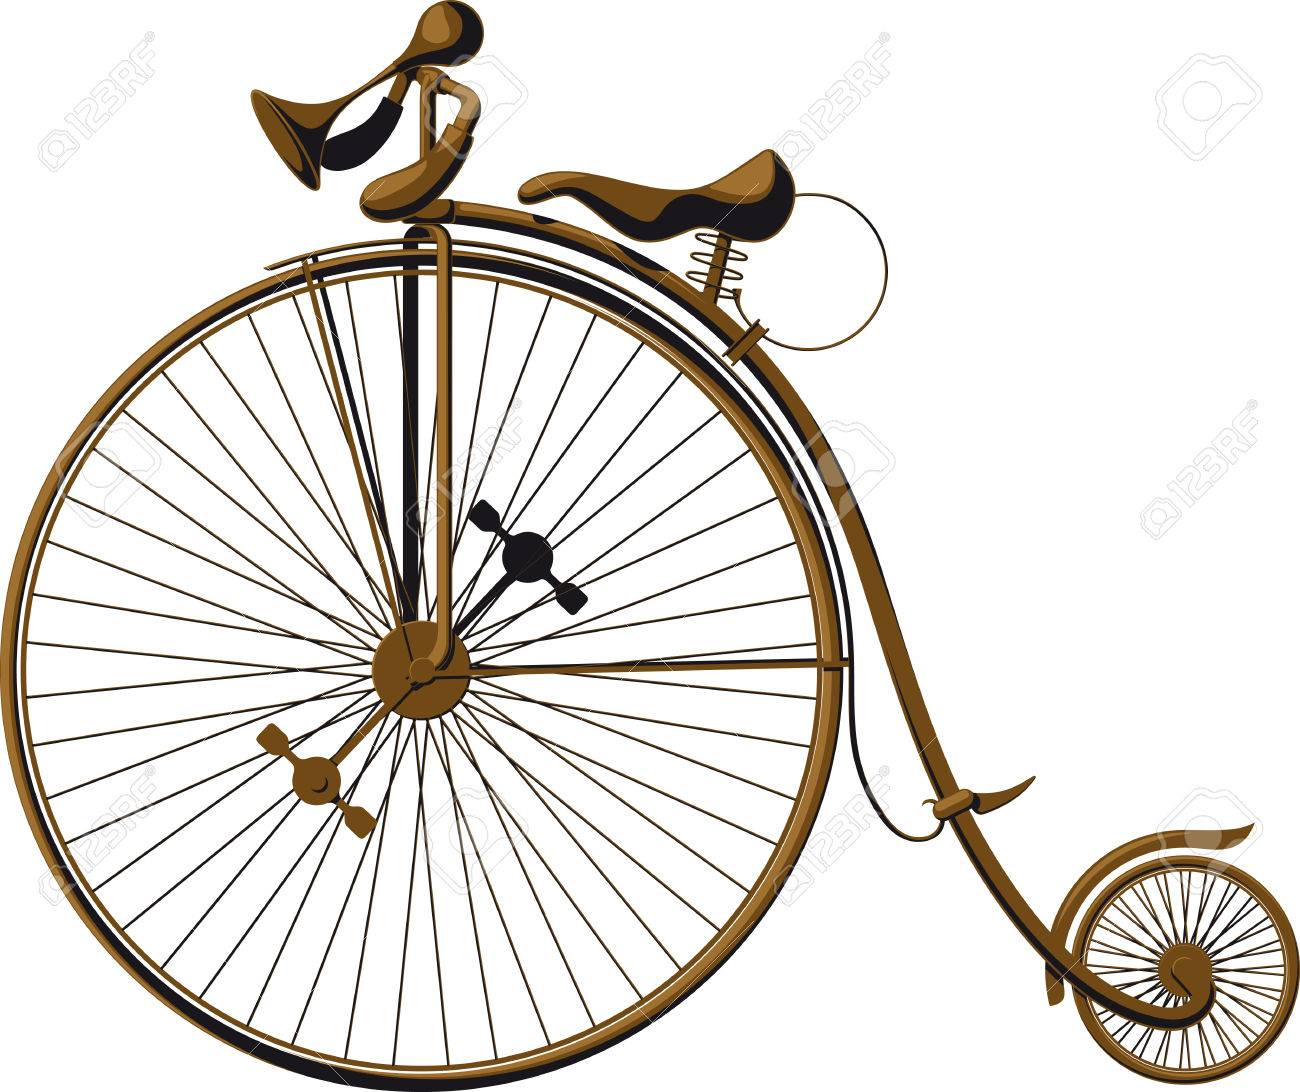 Penny-farthing - Wikipedia Old fashioned big wheel tricycle